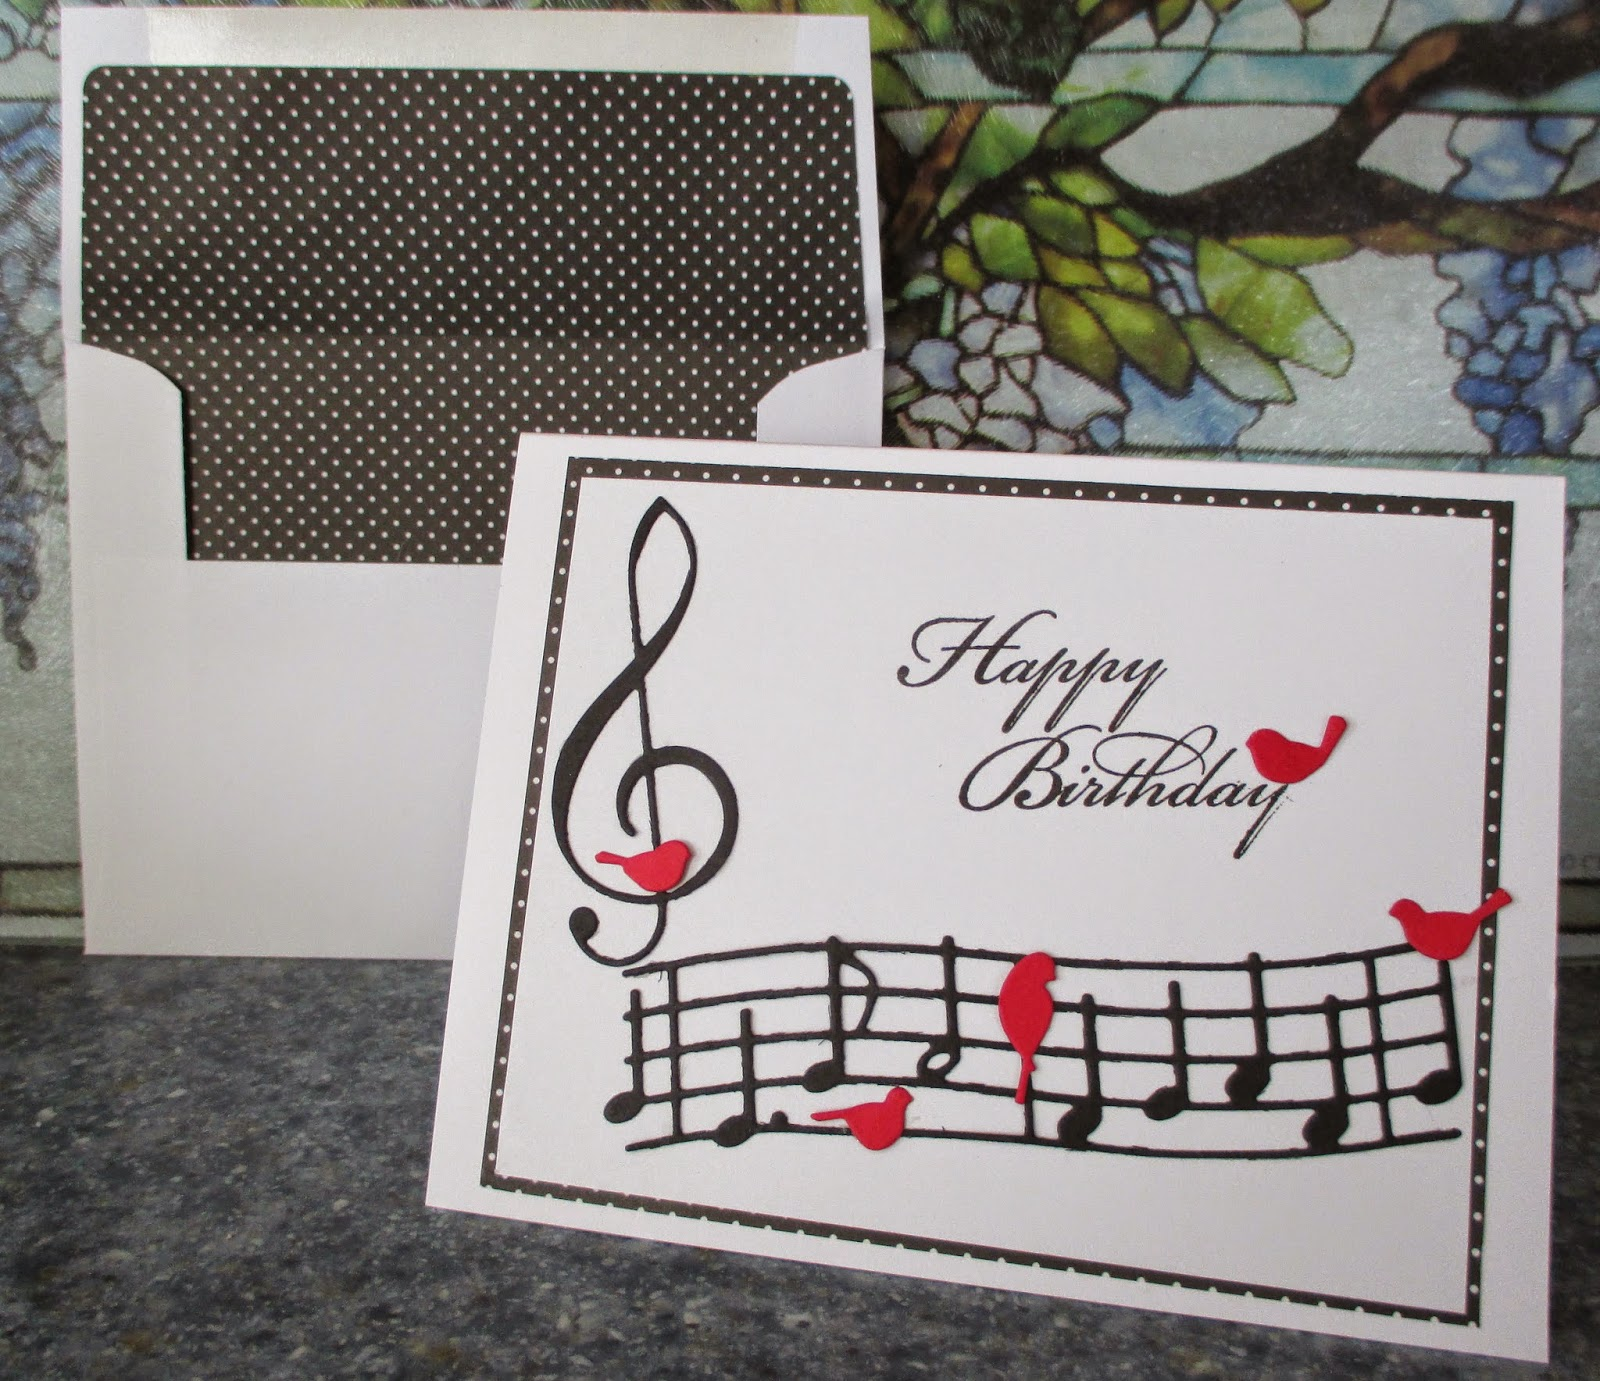 Birthday Card For Darrell Again And I Wanted To Continue With The Music Theme Him Below